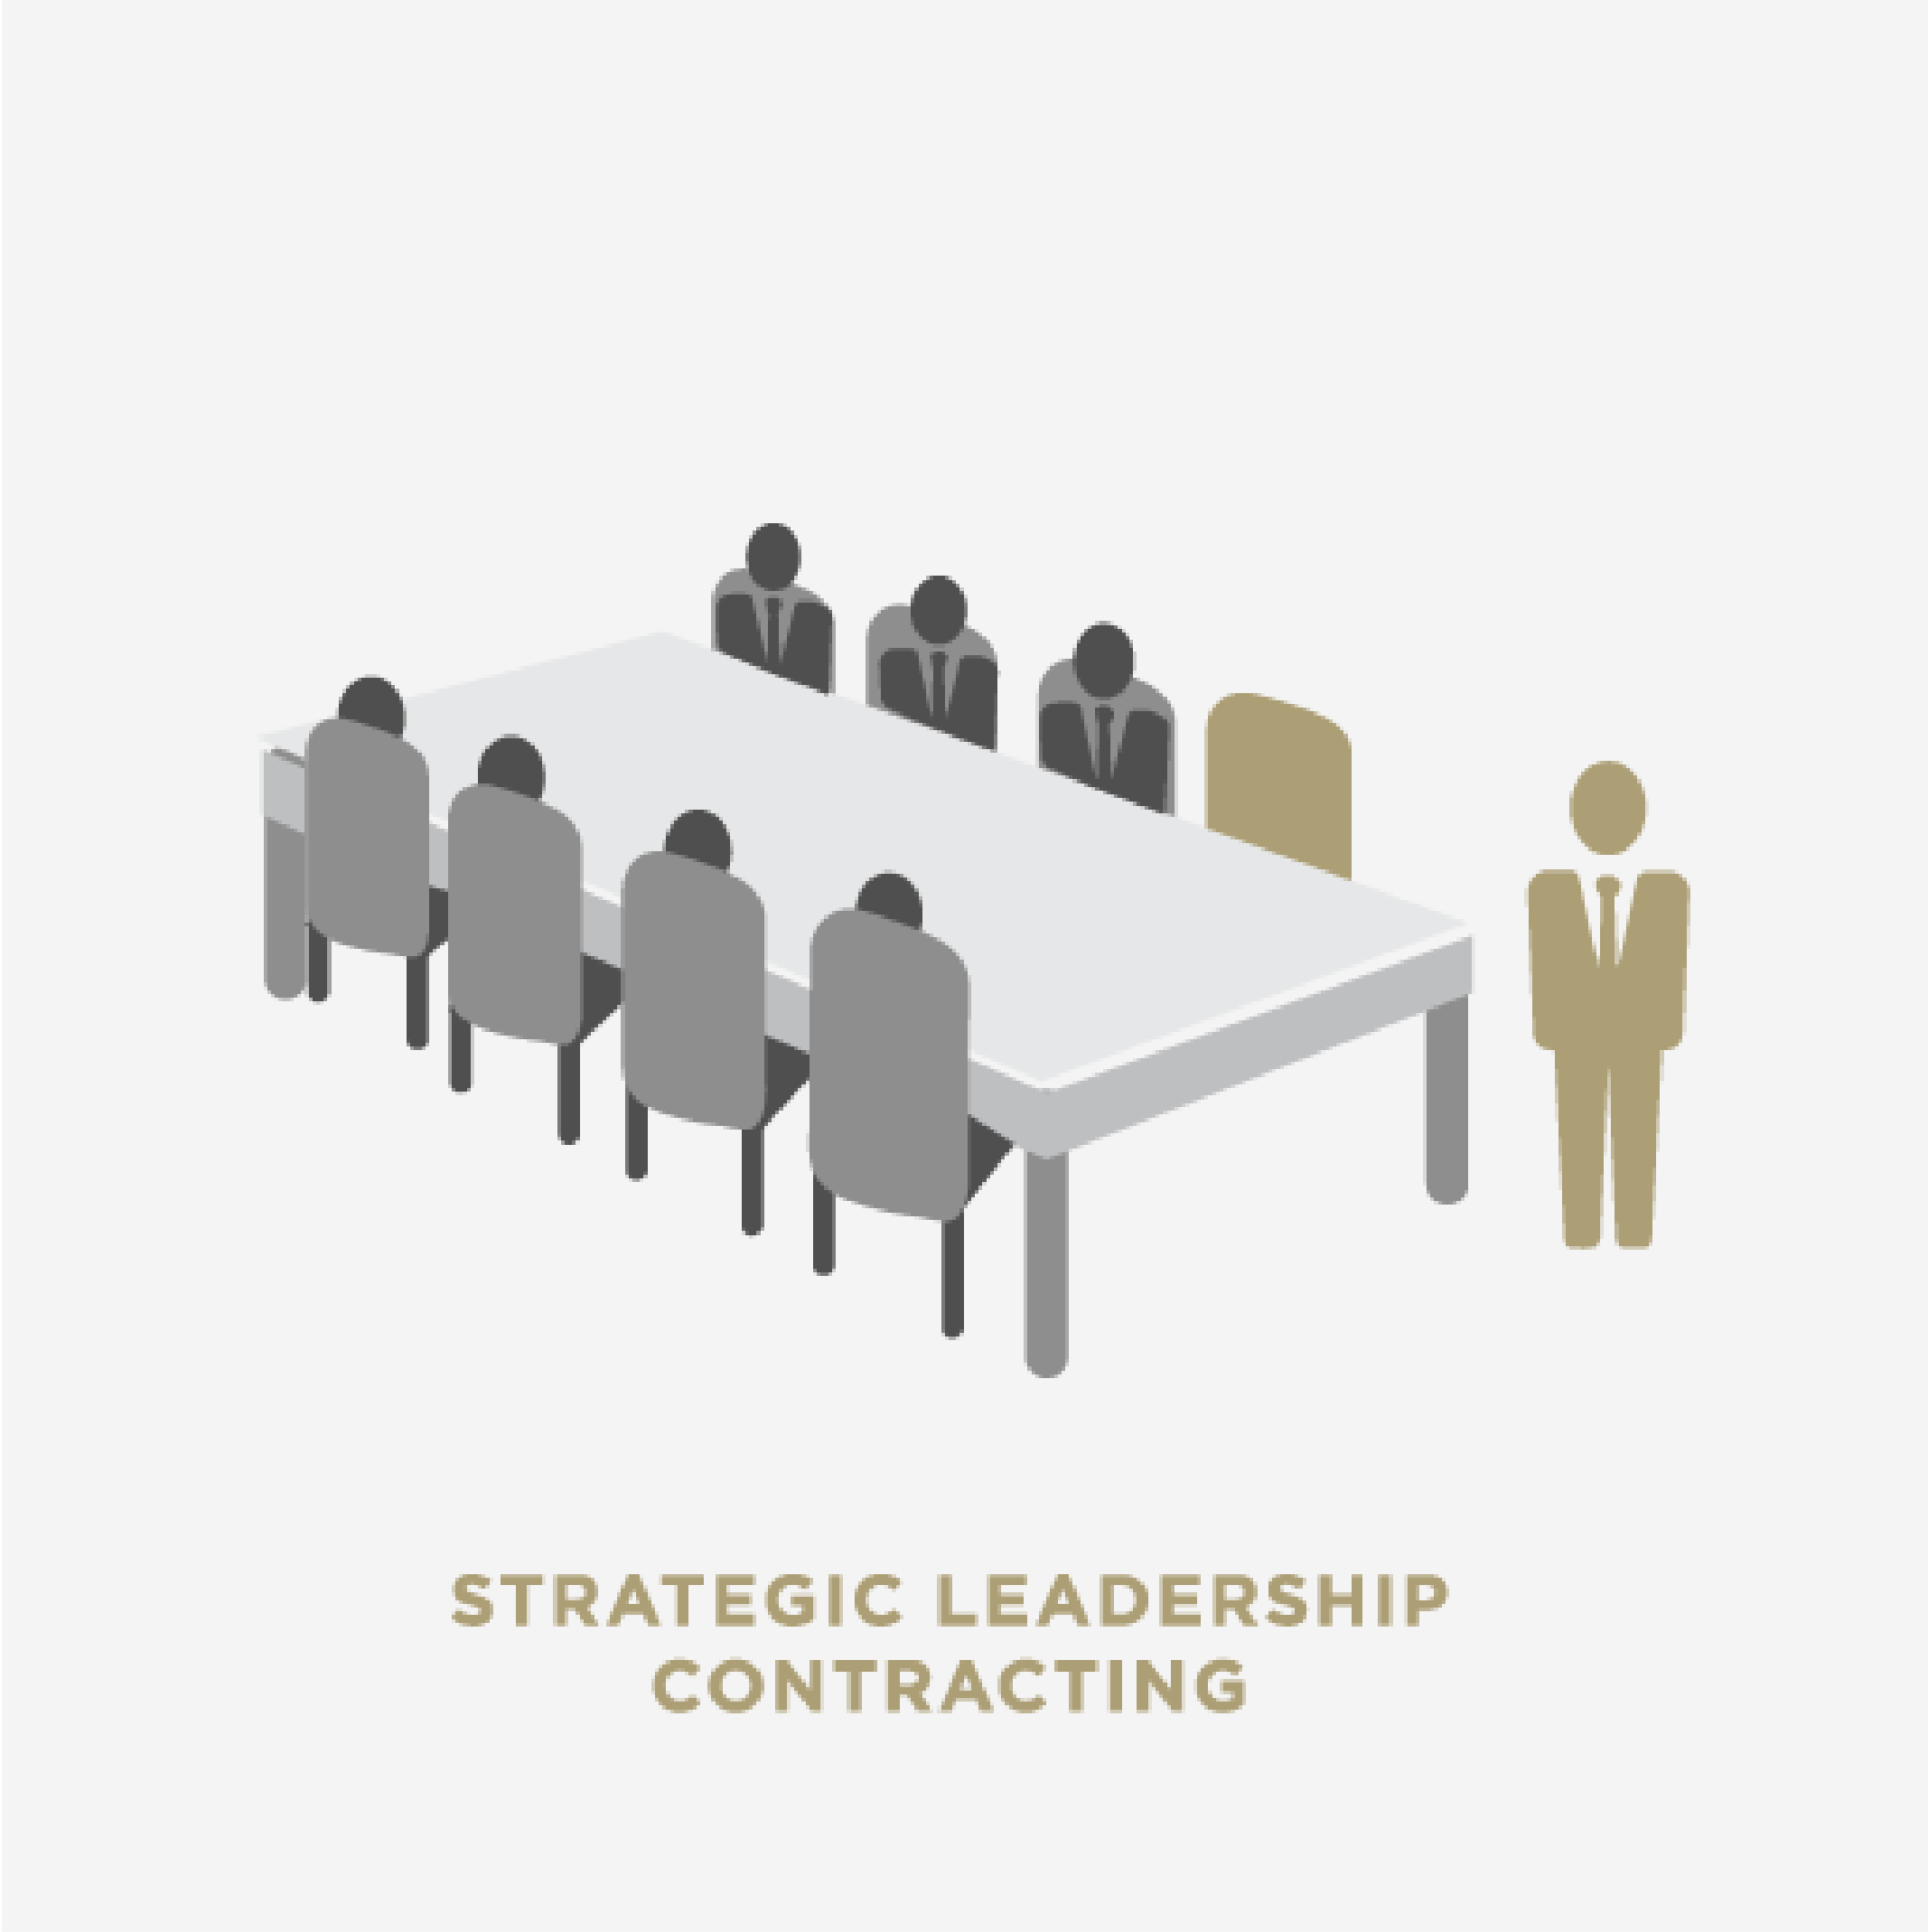 D&C_icons_Strategic Leadership Contracting-01.png